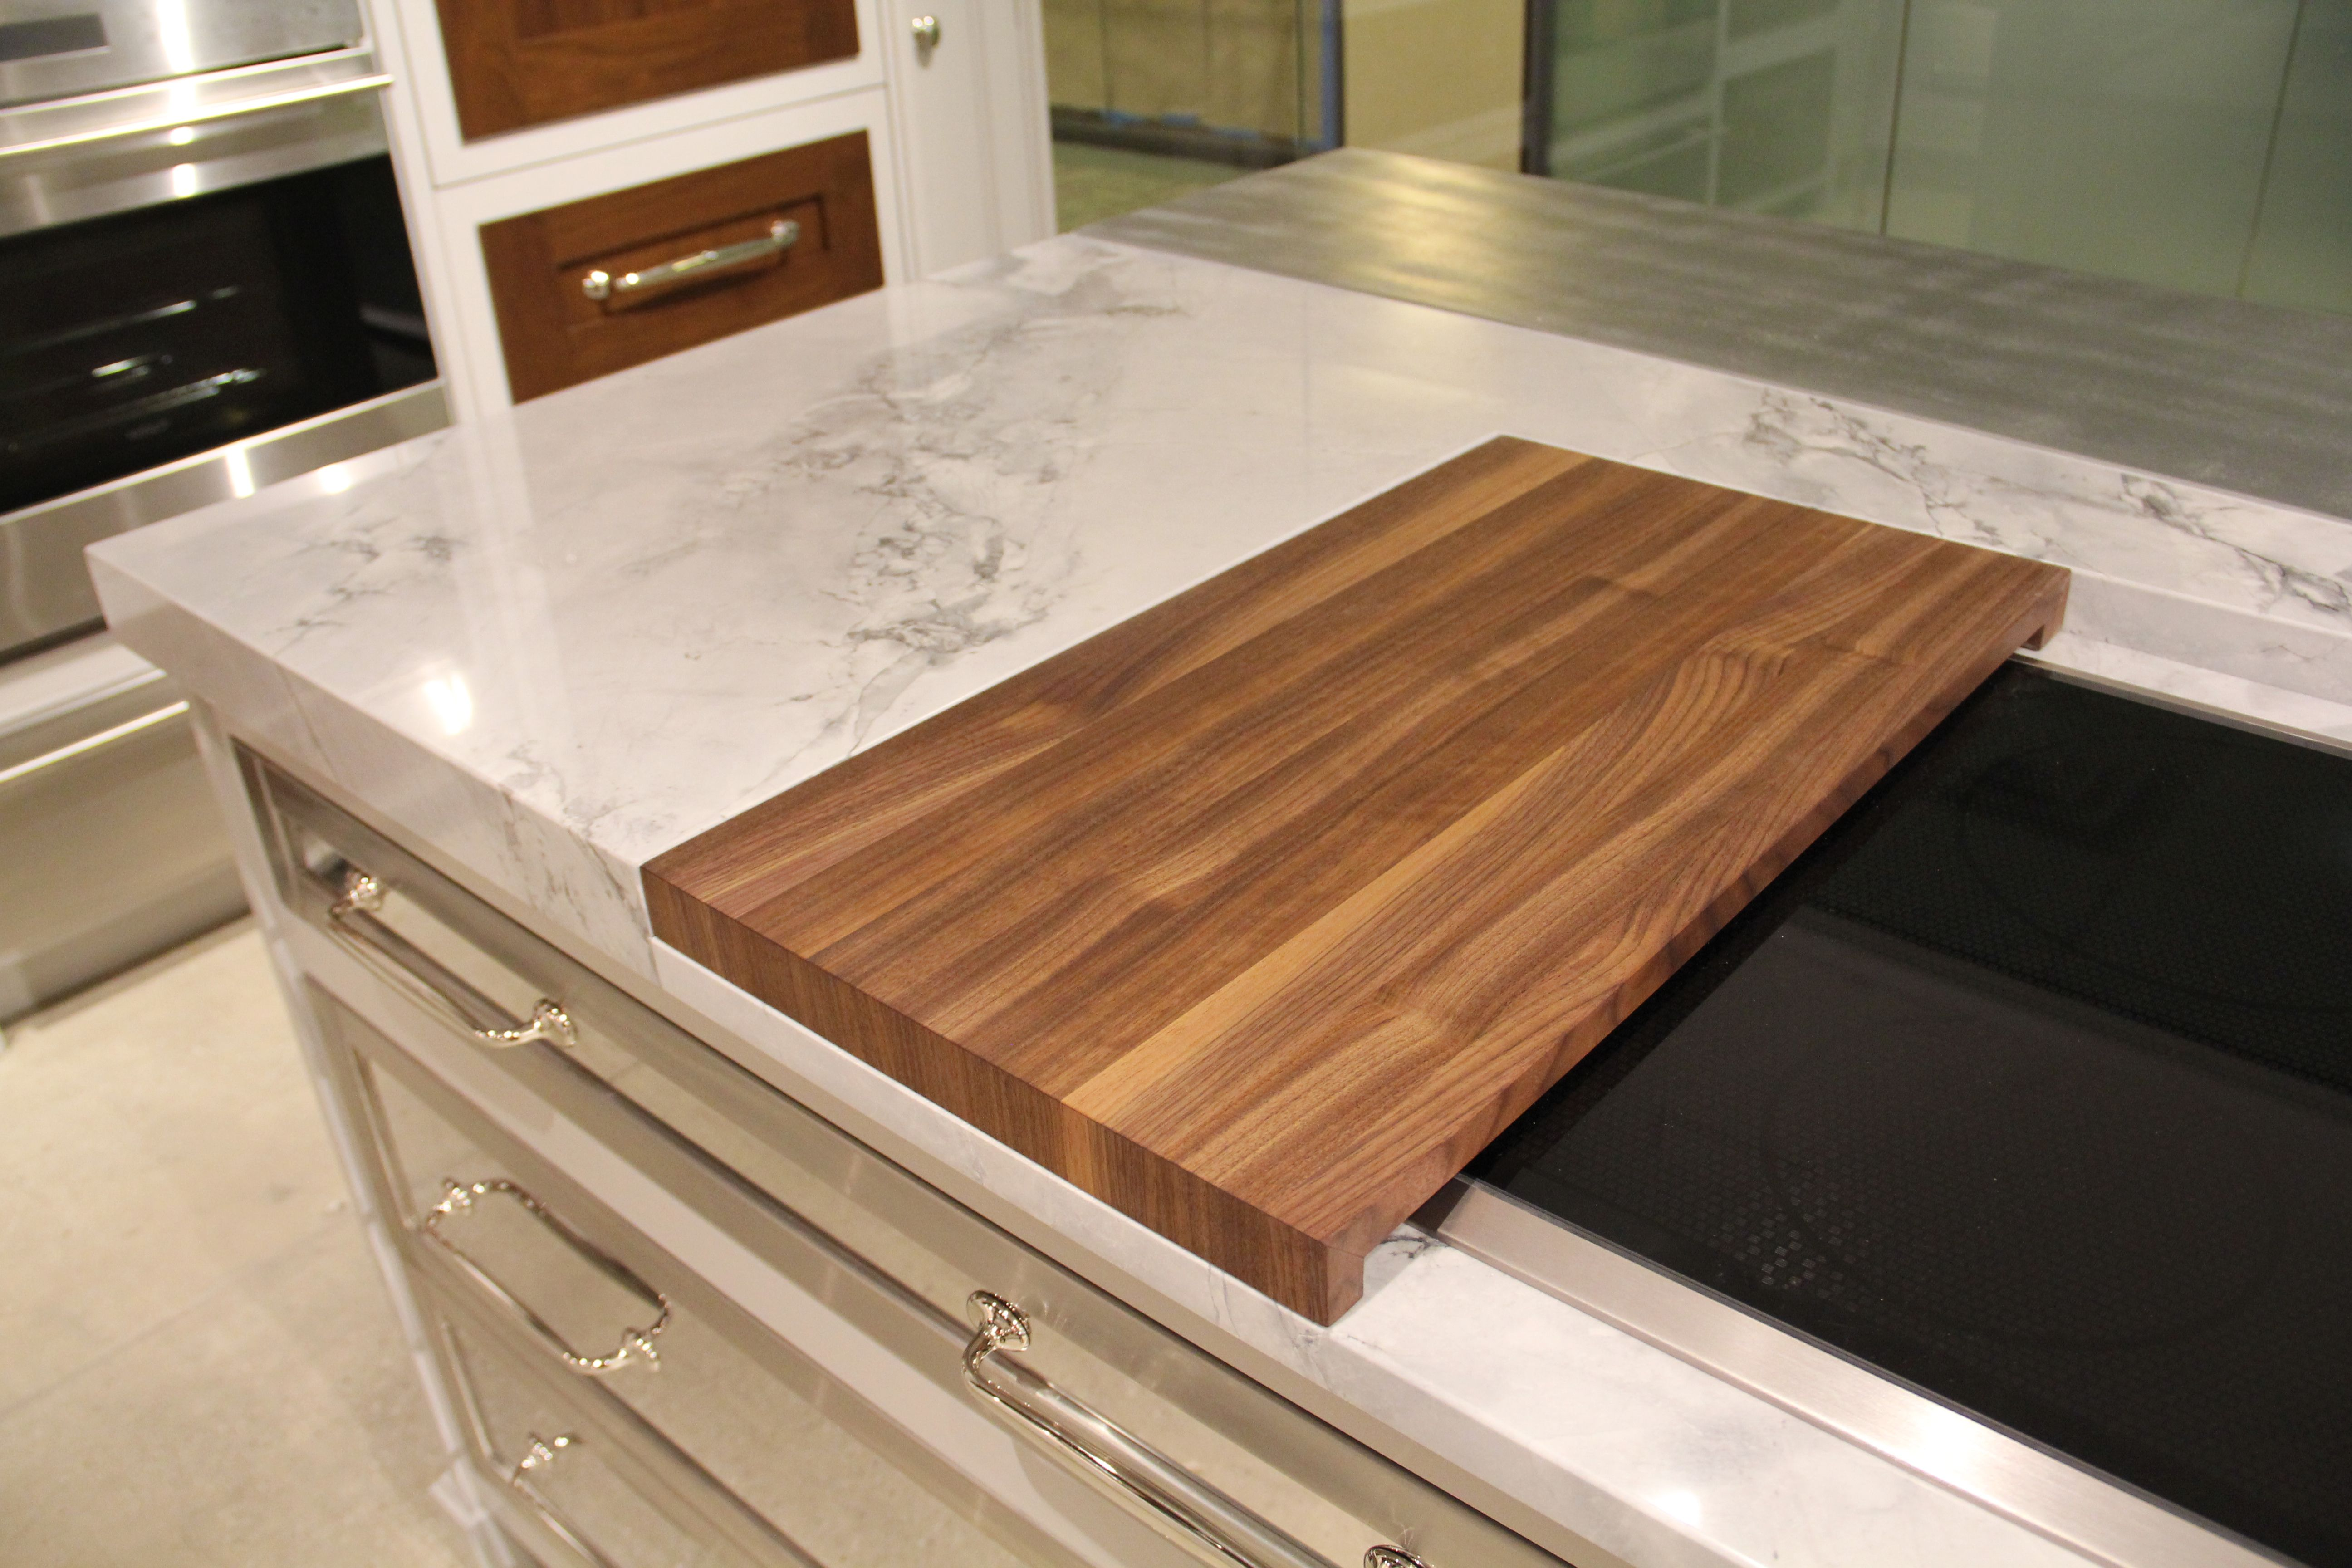 Pin By Engrain Wood Countertops On Engrain Wood Countertops Kitchen Island With Sink White Kitchen Remodeling Kitchen Design